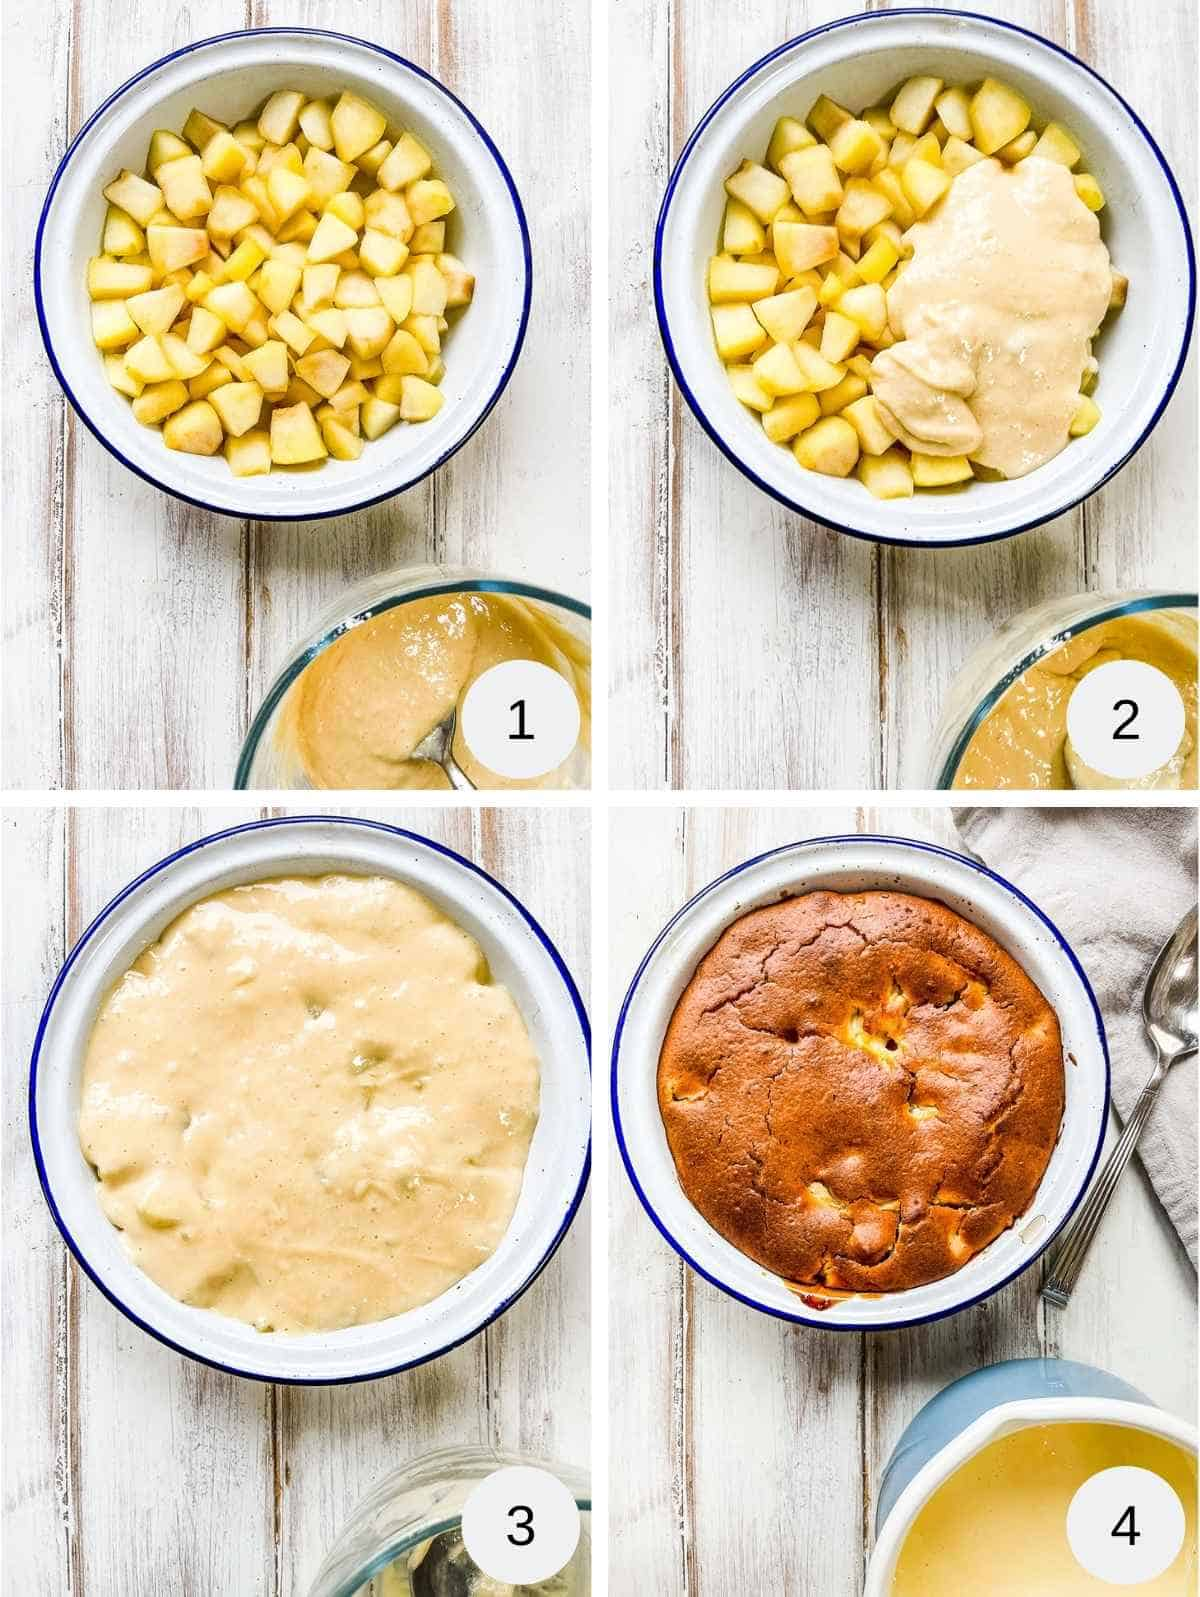 4 pictures of making apple sponge pudding, includes pictures of pie dish of chopped apples, spreading sponge topping on top and after baking.